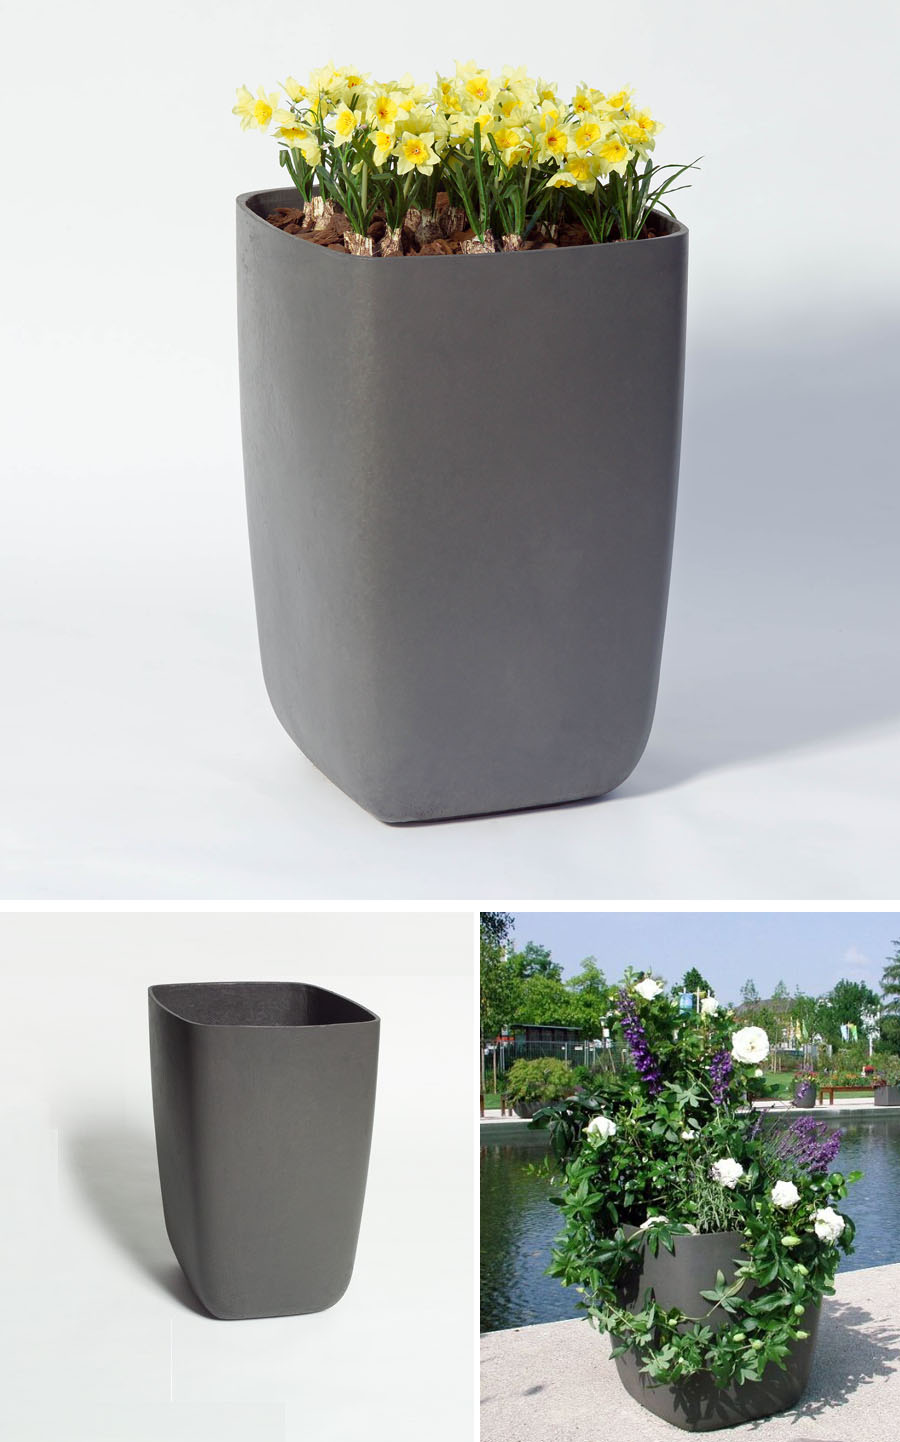 Samurai Tall Outdoor Planter Pot With Rounded Corners